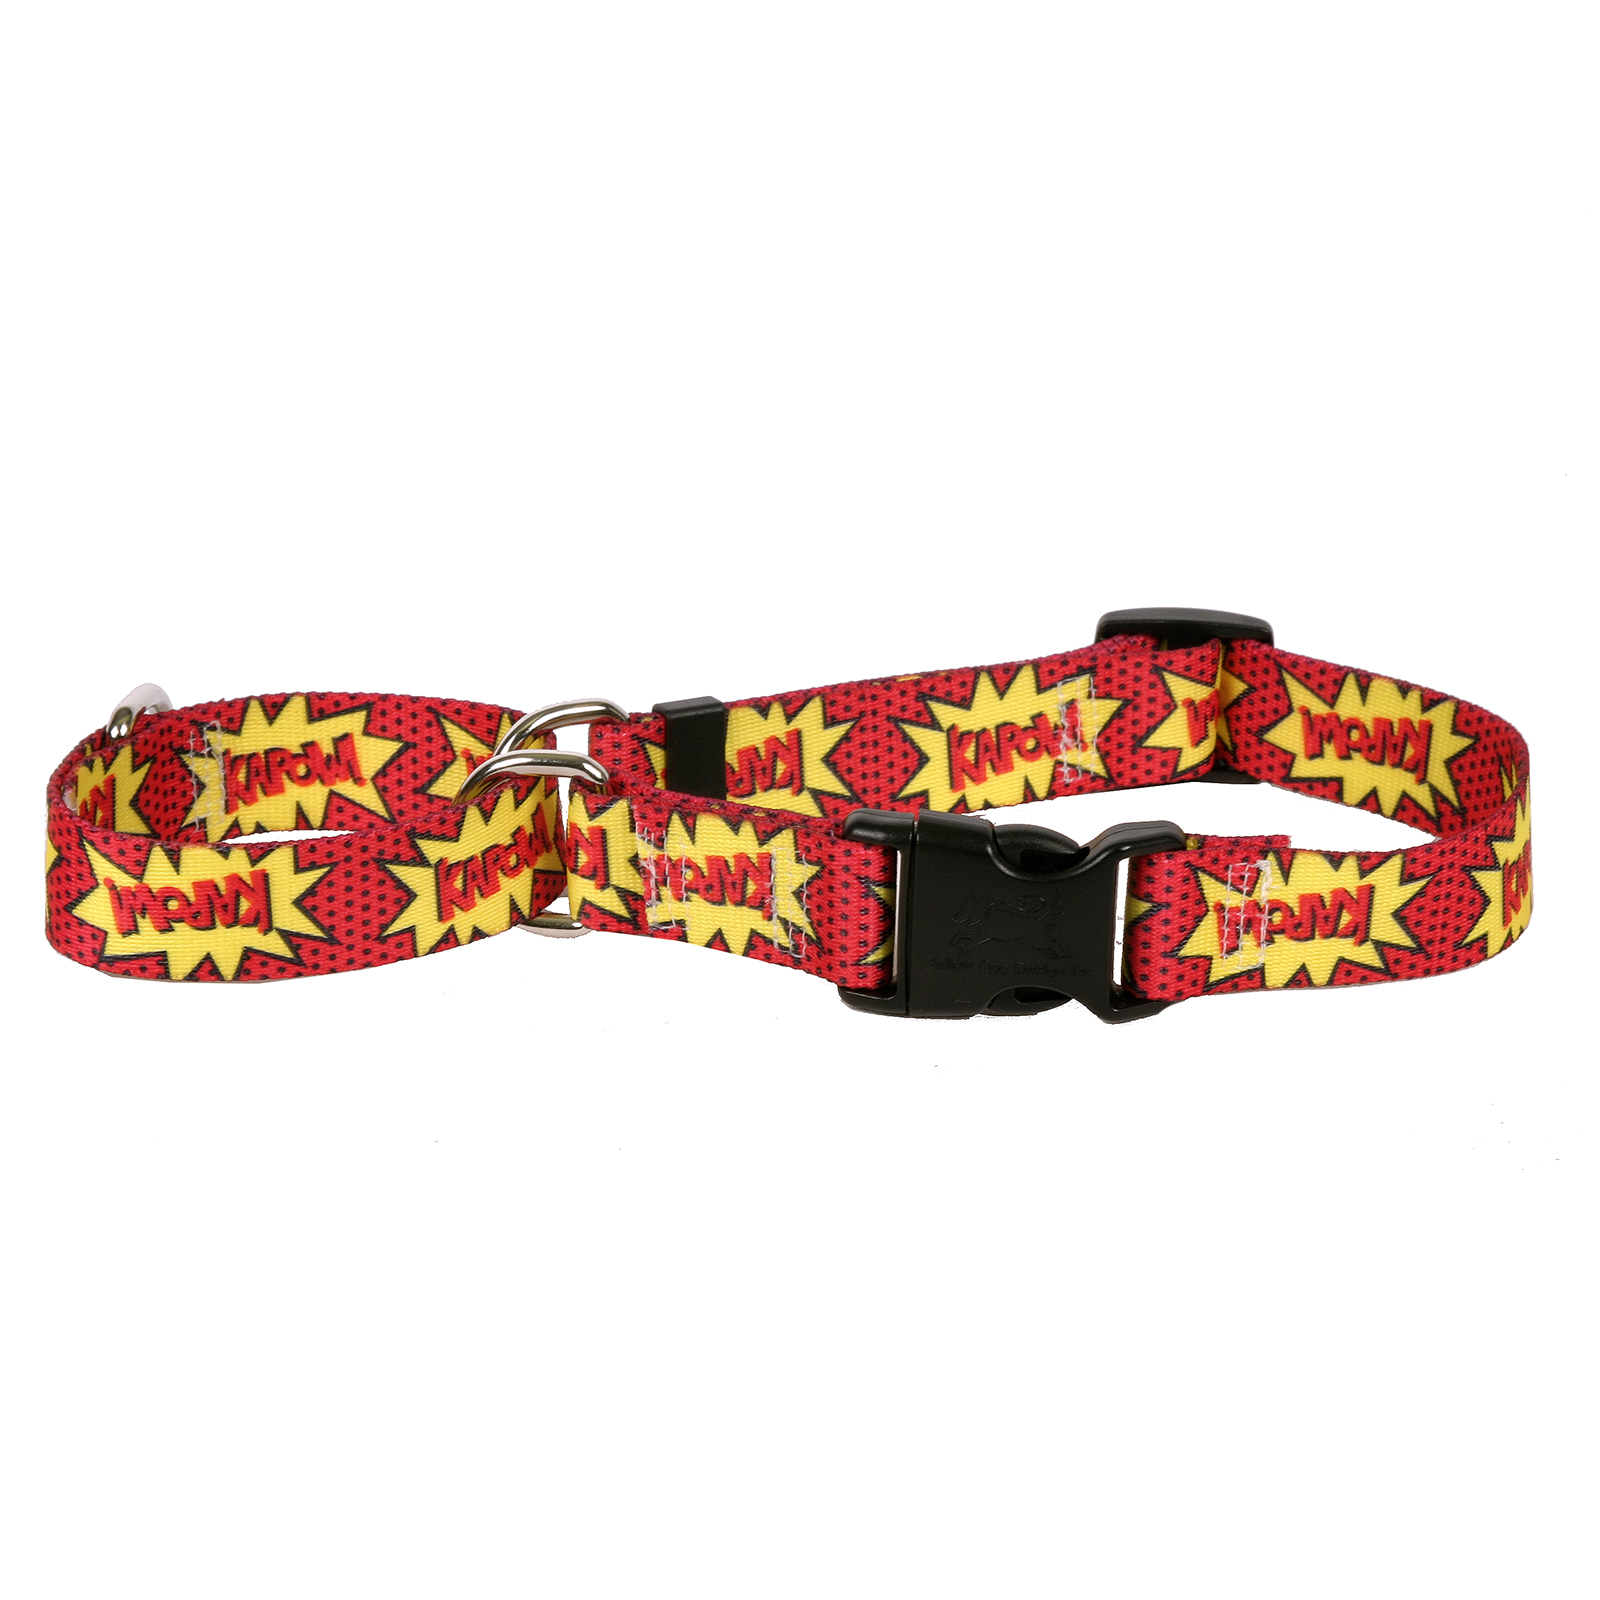 Kapow Martingale Collar